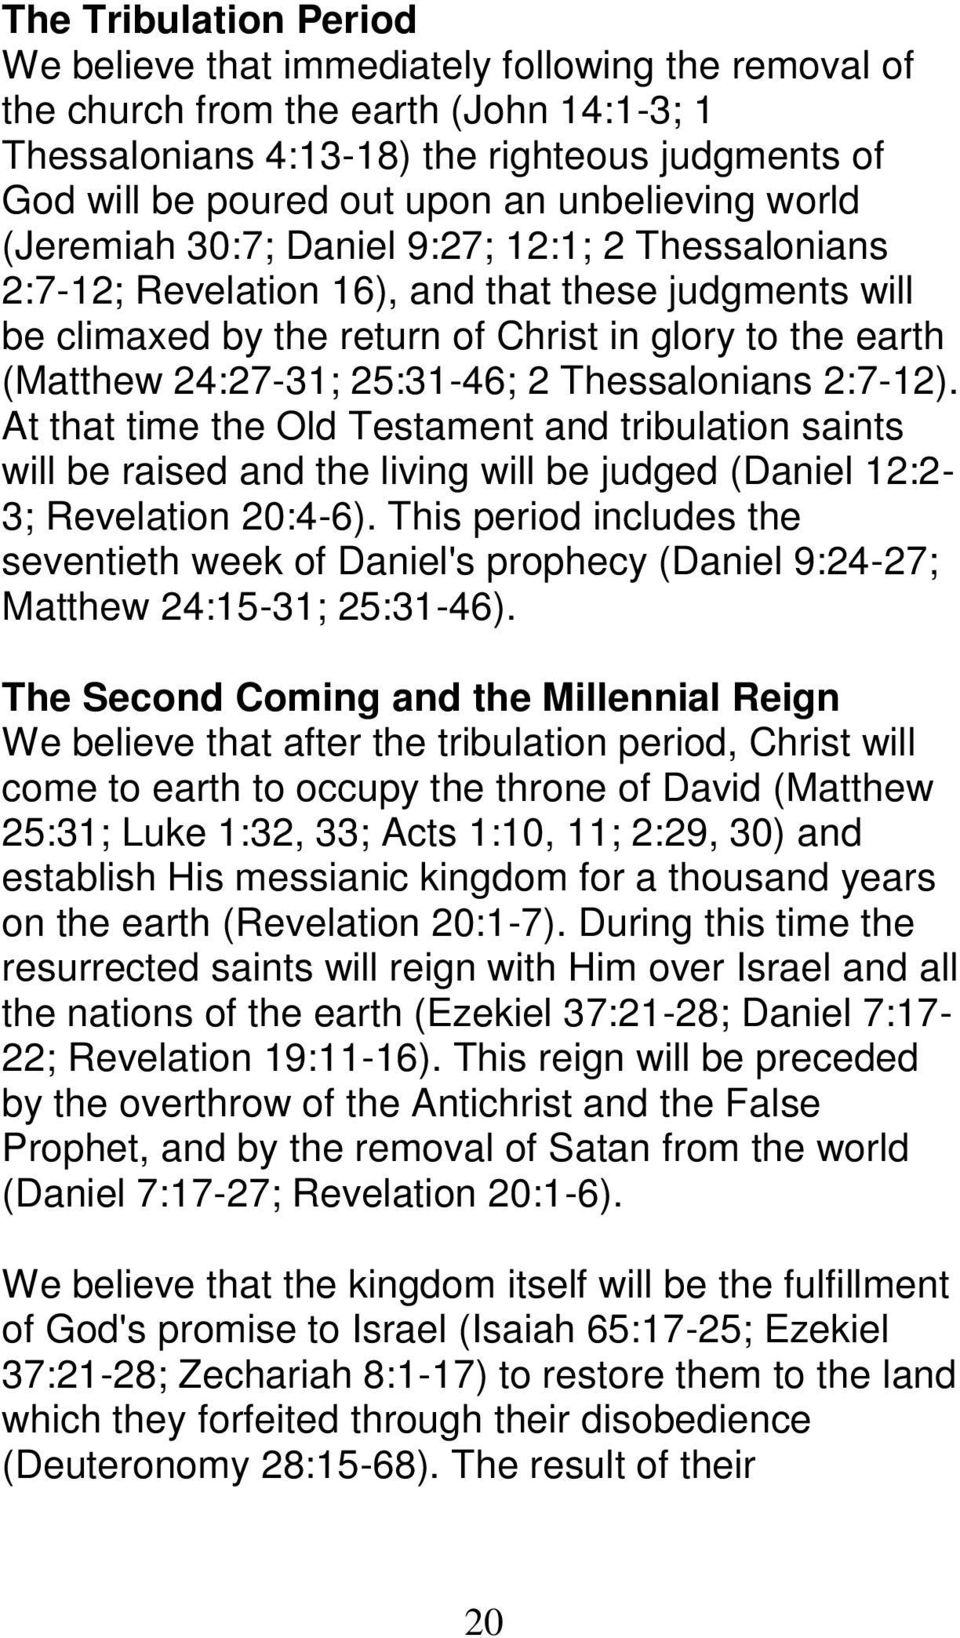 25:31-46; 2 Thessalonians 2:7-12). At that time the Old Testament and tribulation saints will be raised and the living will be judged (Daniel 12:2-3; Revelation 20:4-6).